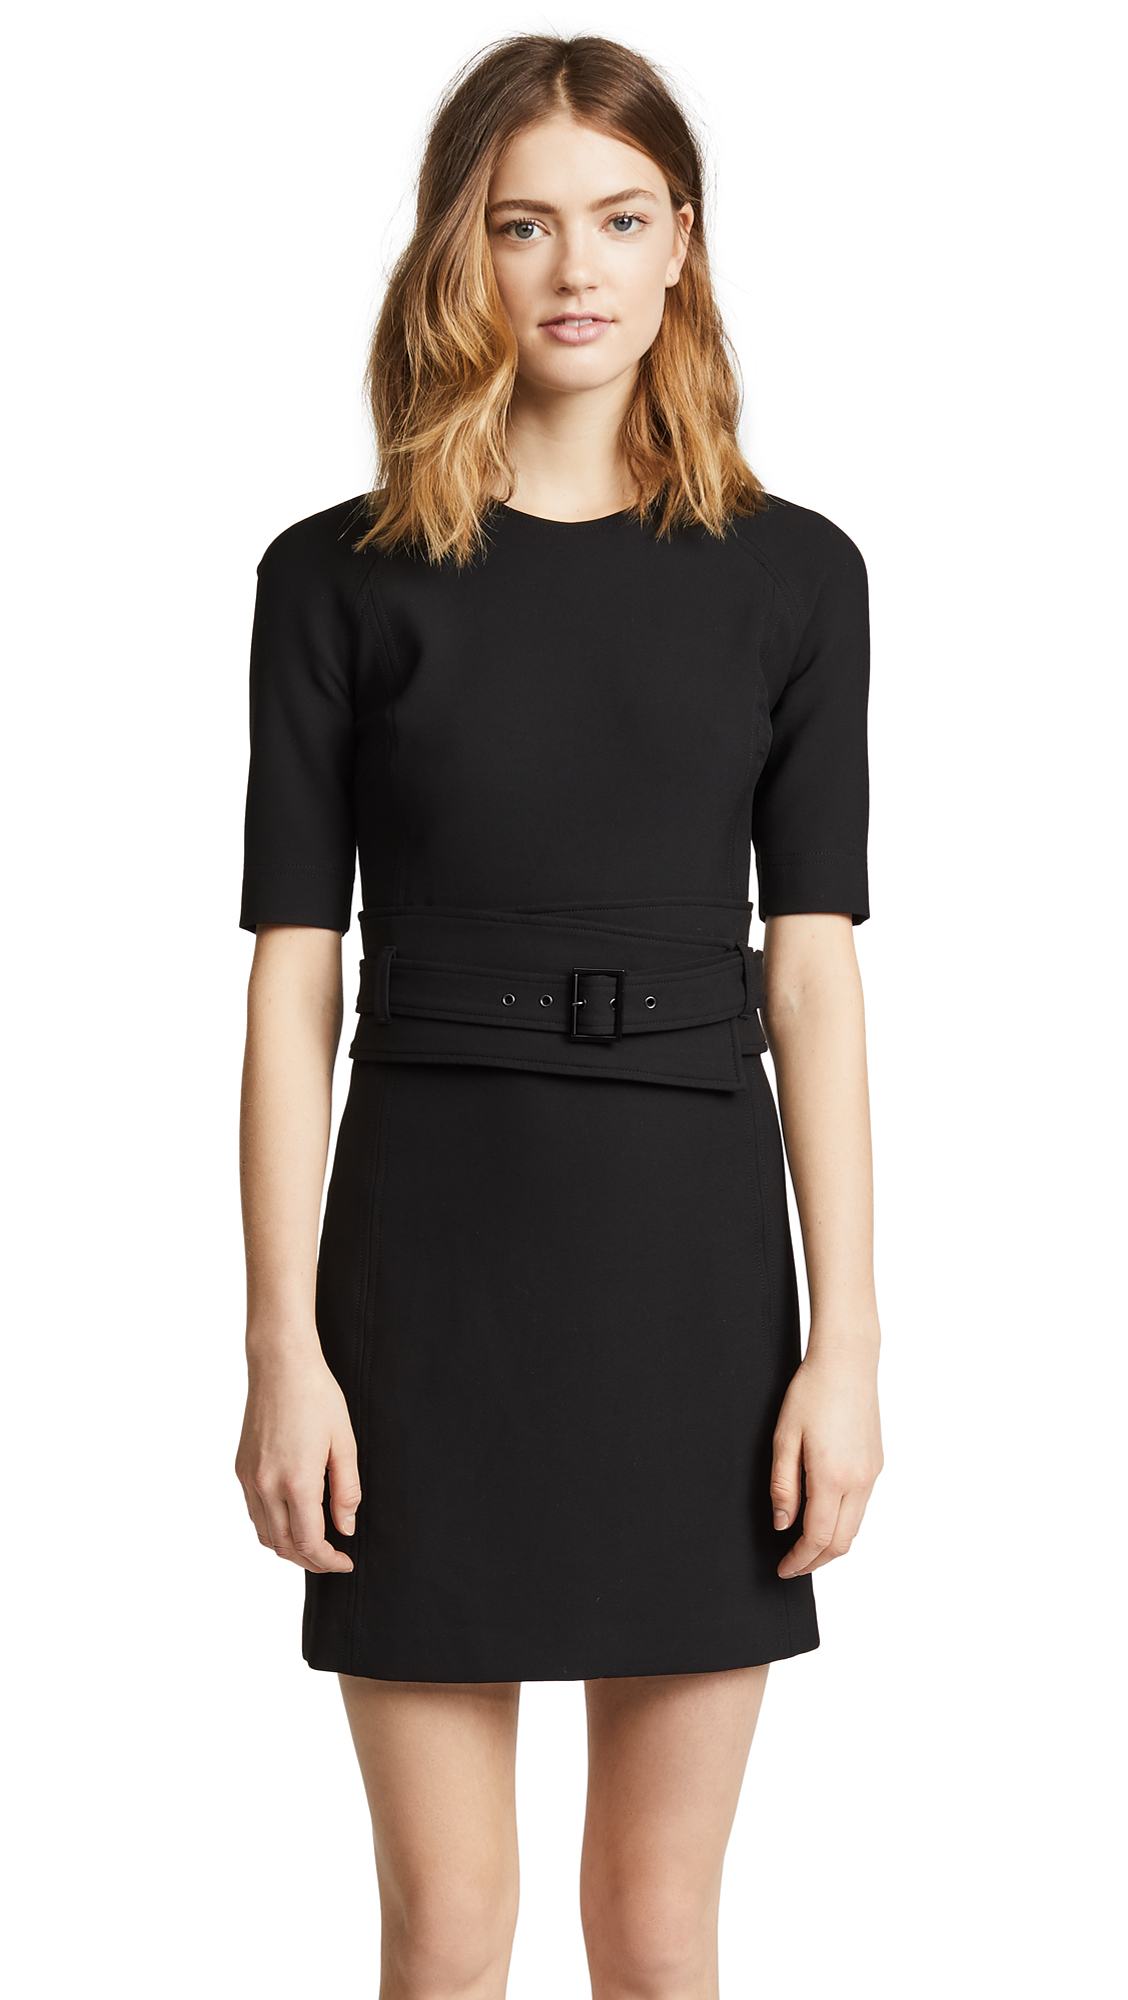 Veronica Beard Nora Dress - 60% Off Sale